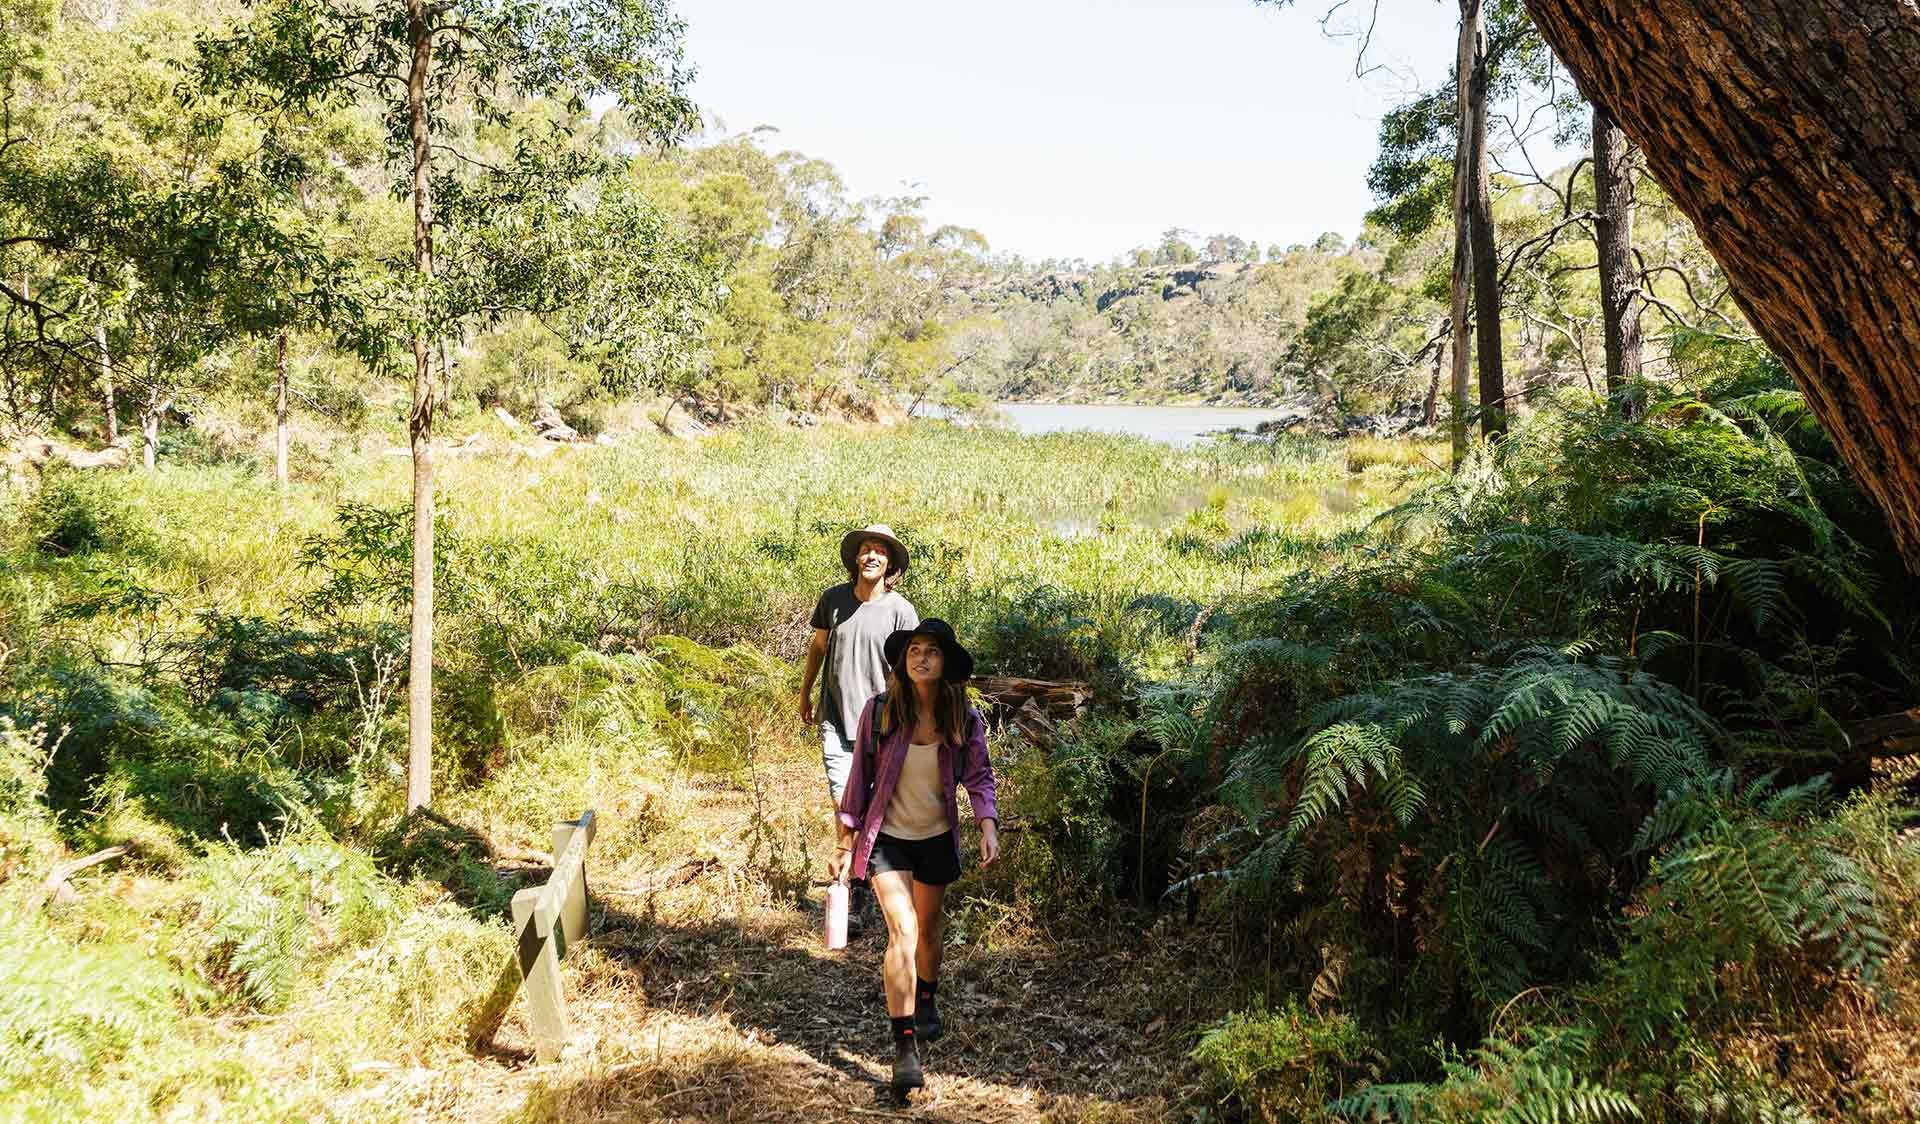 A young woman leading a man on a walk through Budj Bim National Park